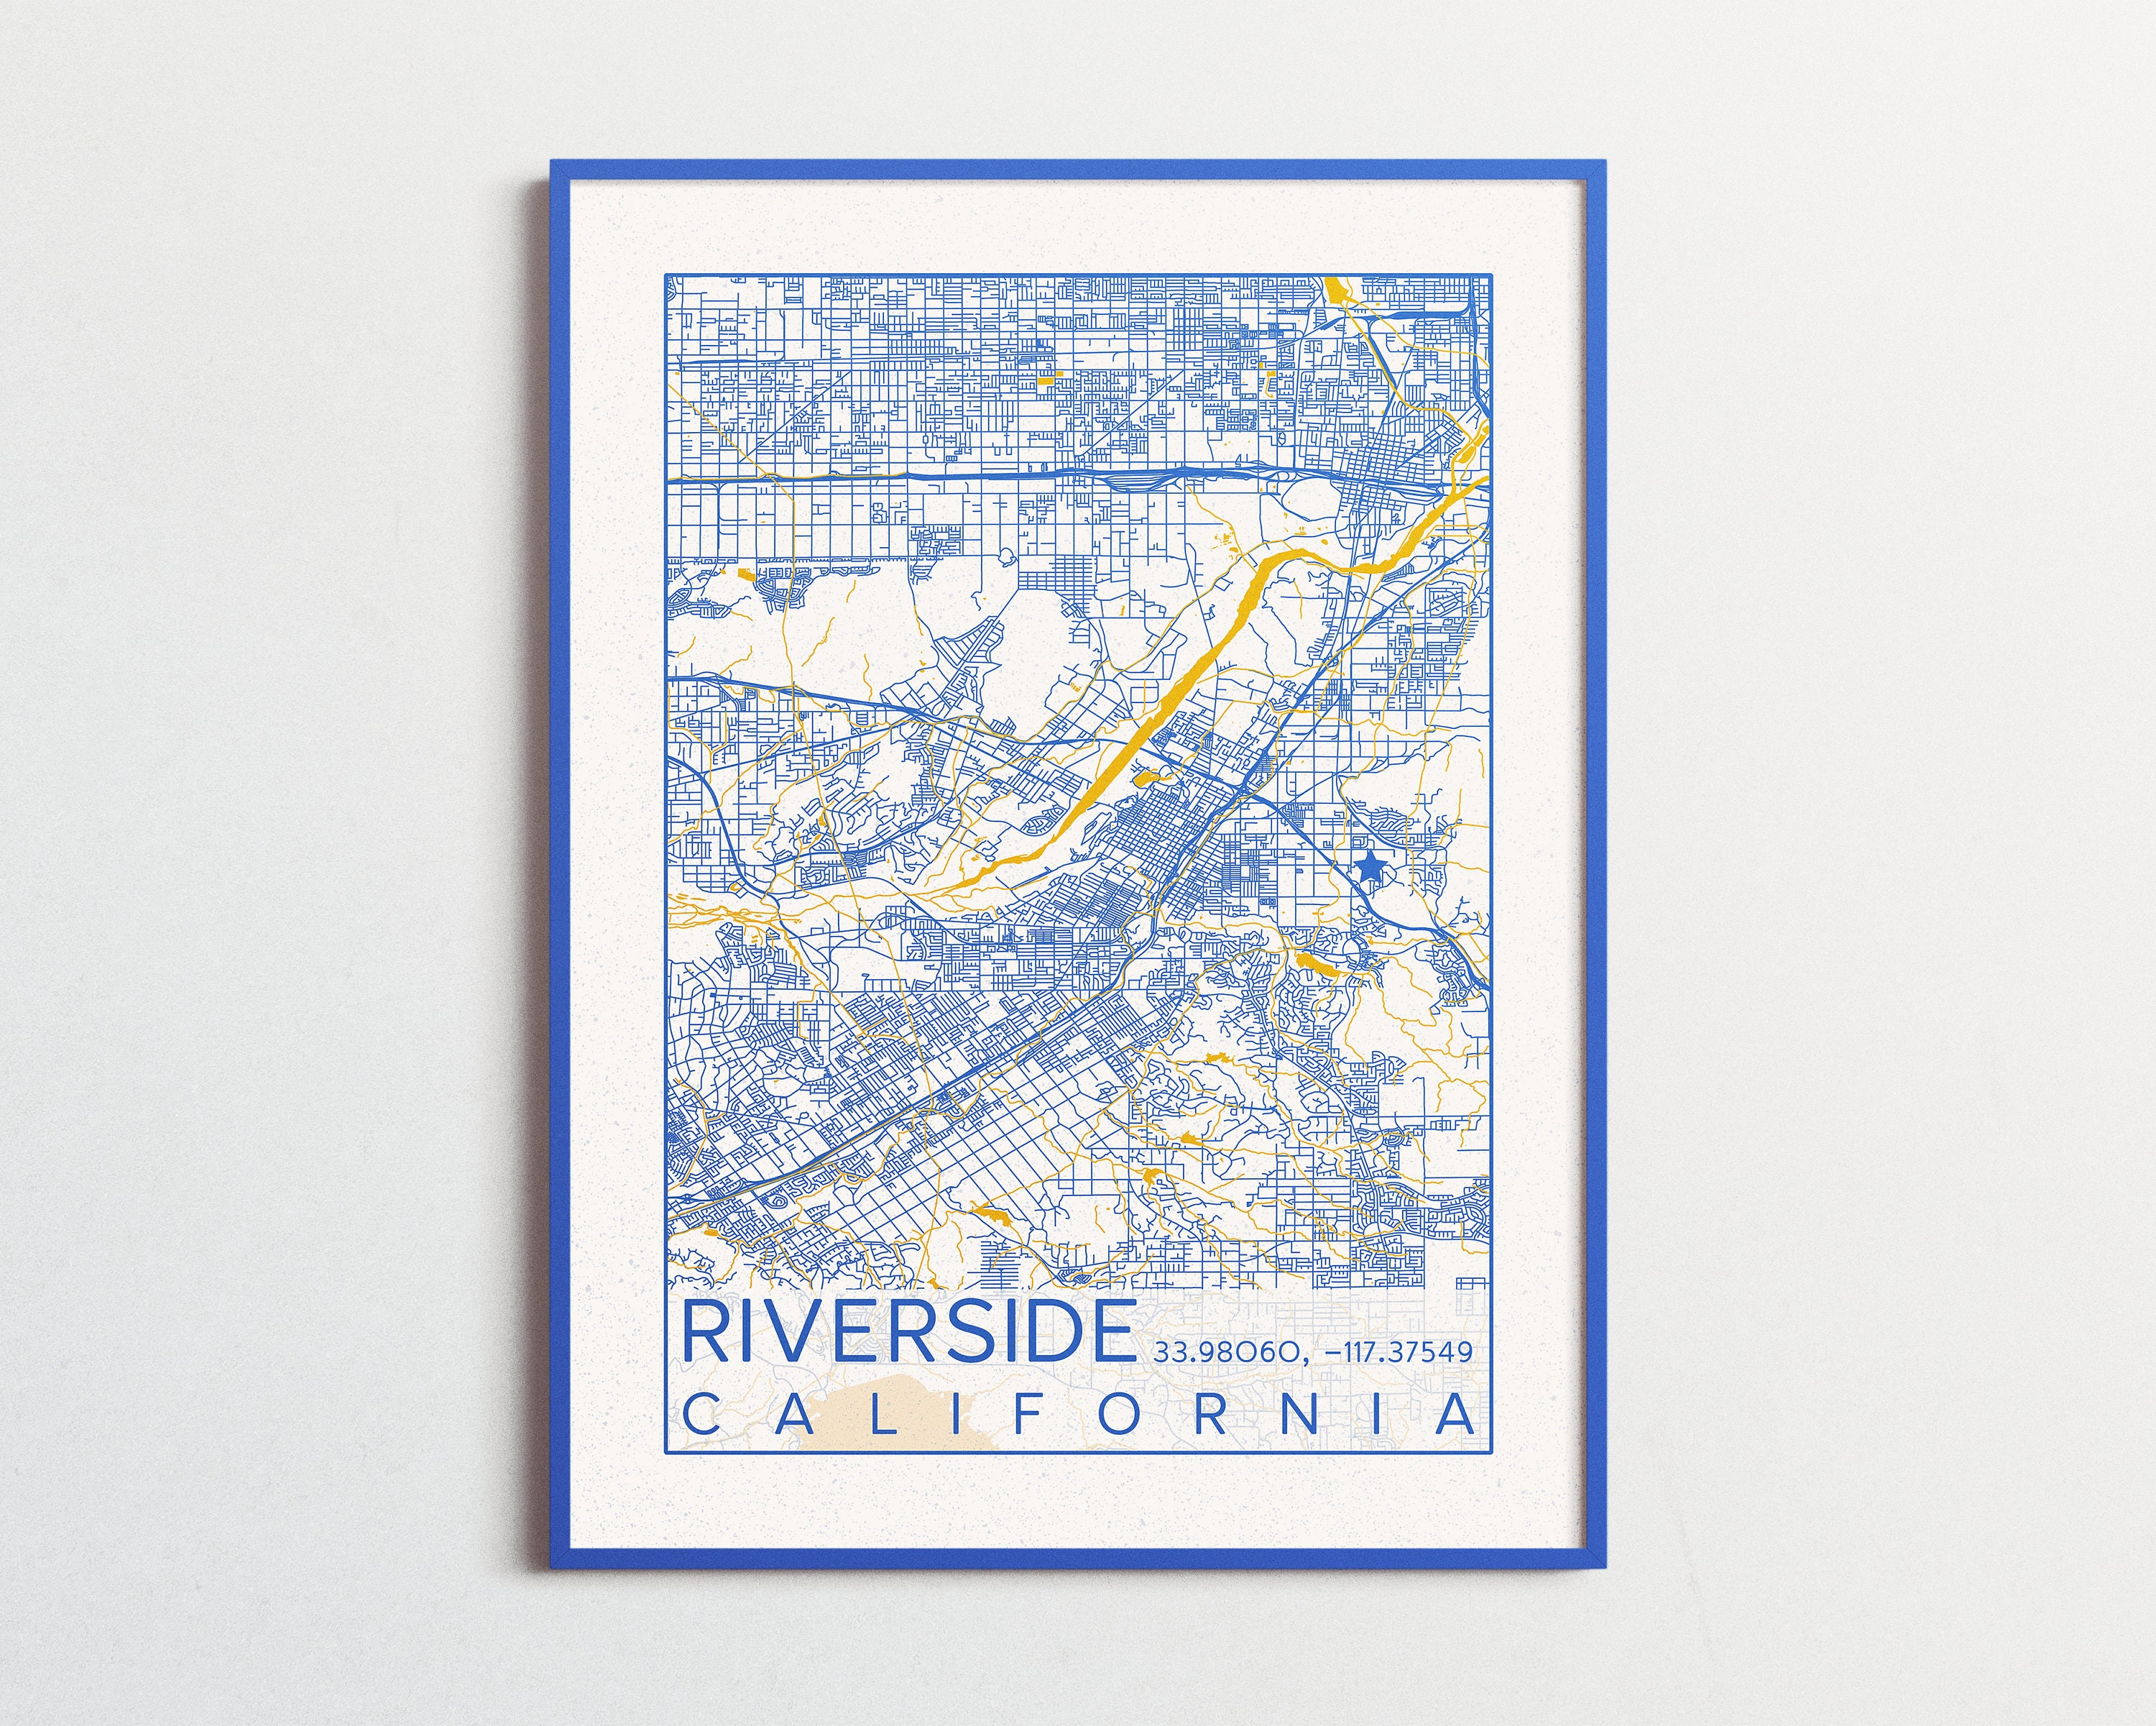 Universities And Colleges In California Map.Riverside California Map Uc Riverside Poster Print City Map